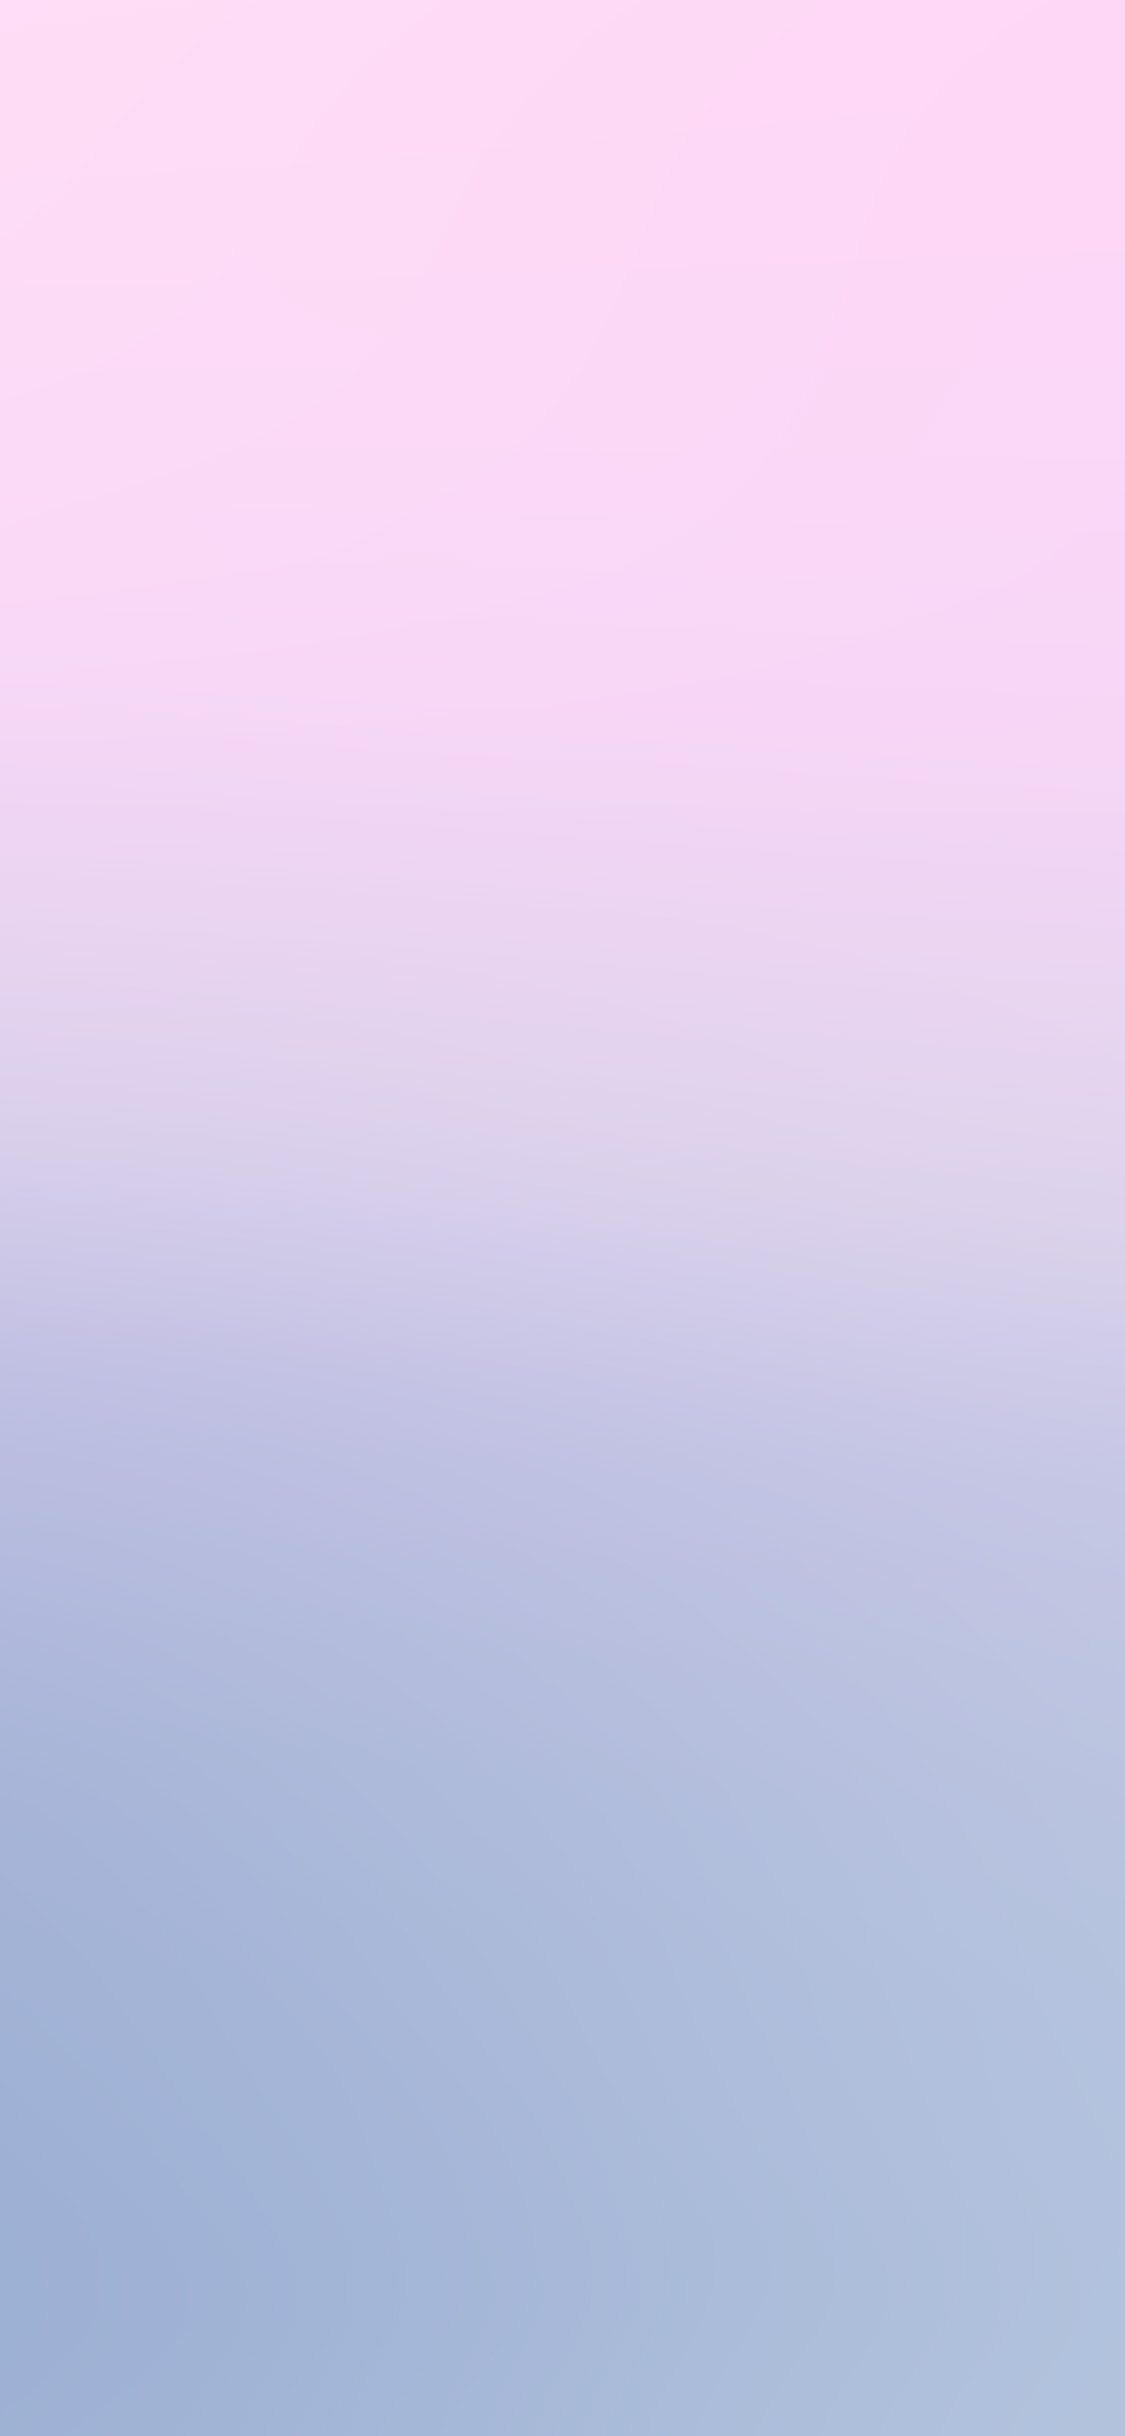 iPhonexpapers.com-Apple-iPhone-wallpaper-sm48-purple-pink-blue-blur-gradation